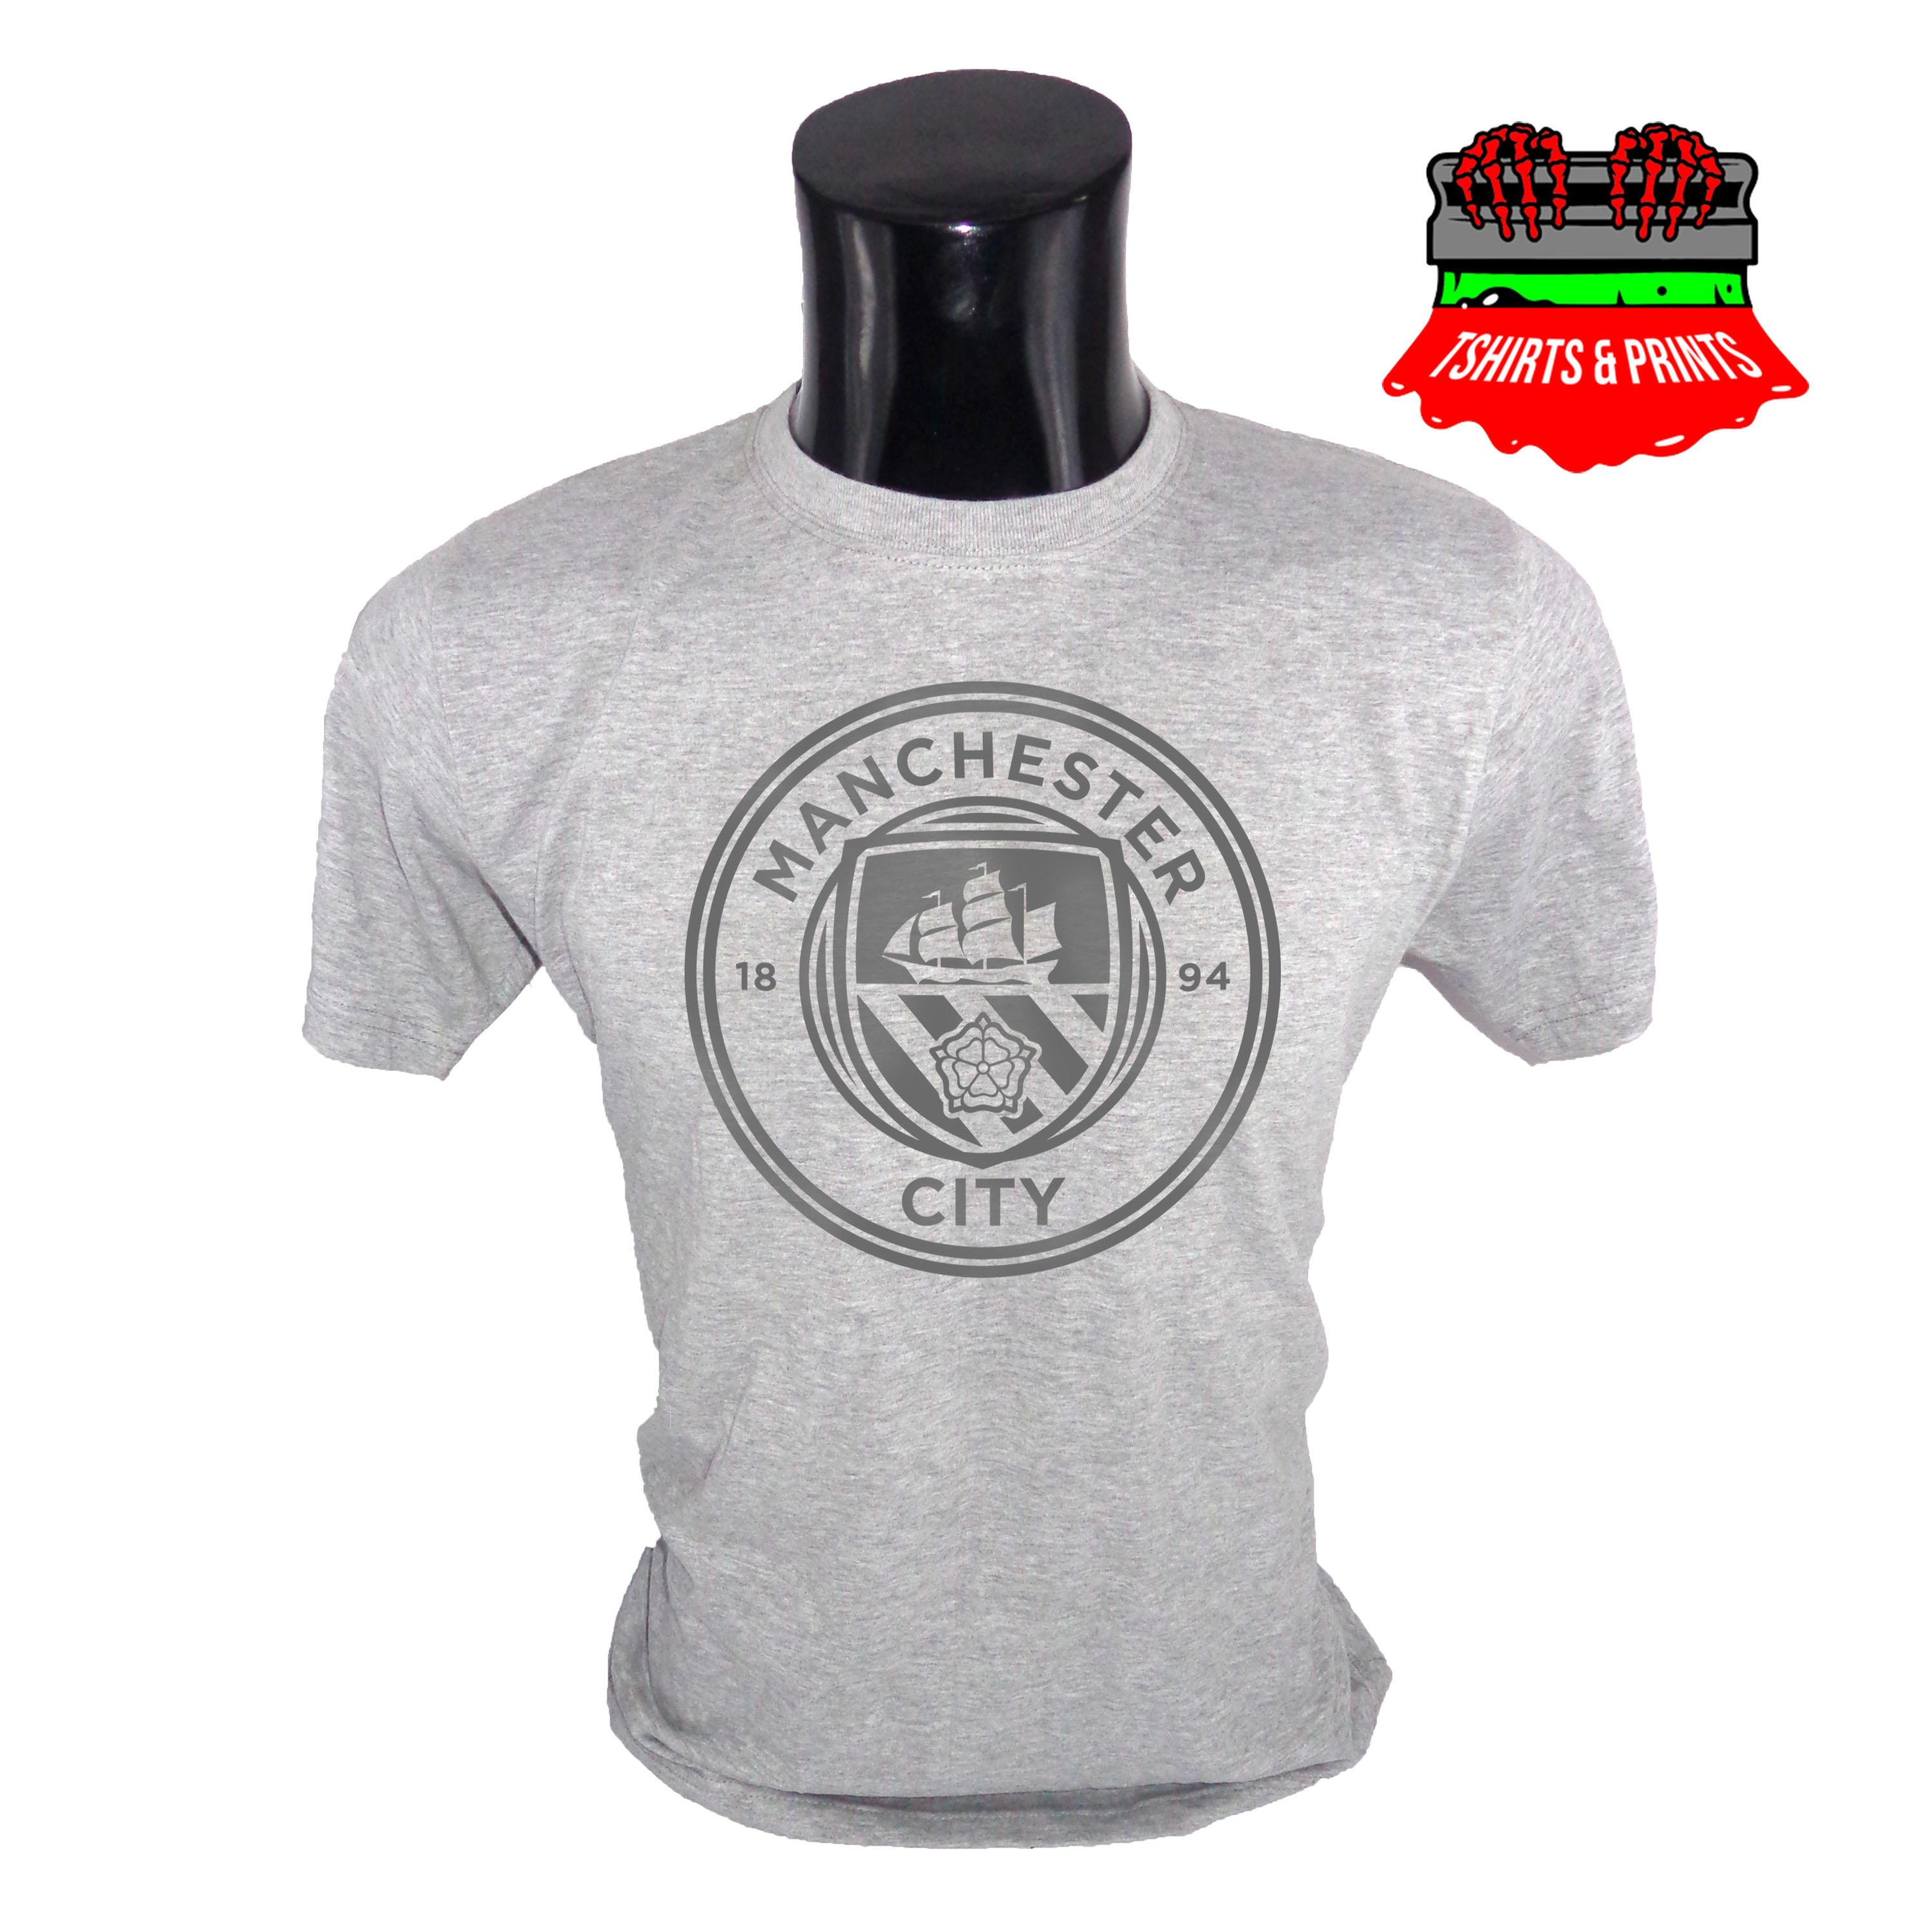 6b2f7afc Manchester City FC Logo Printed T-Shirt